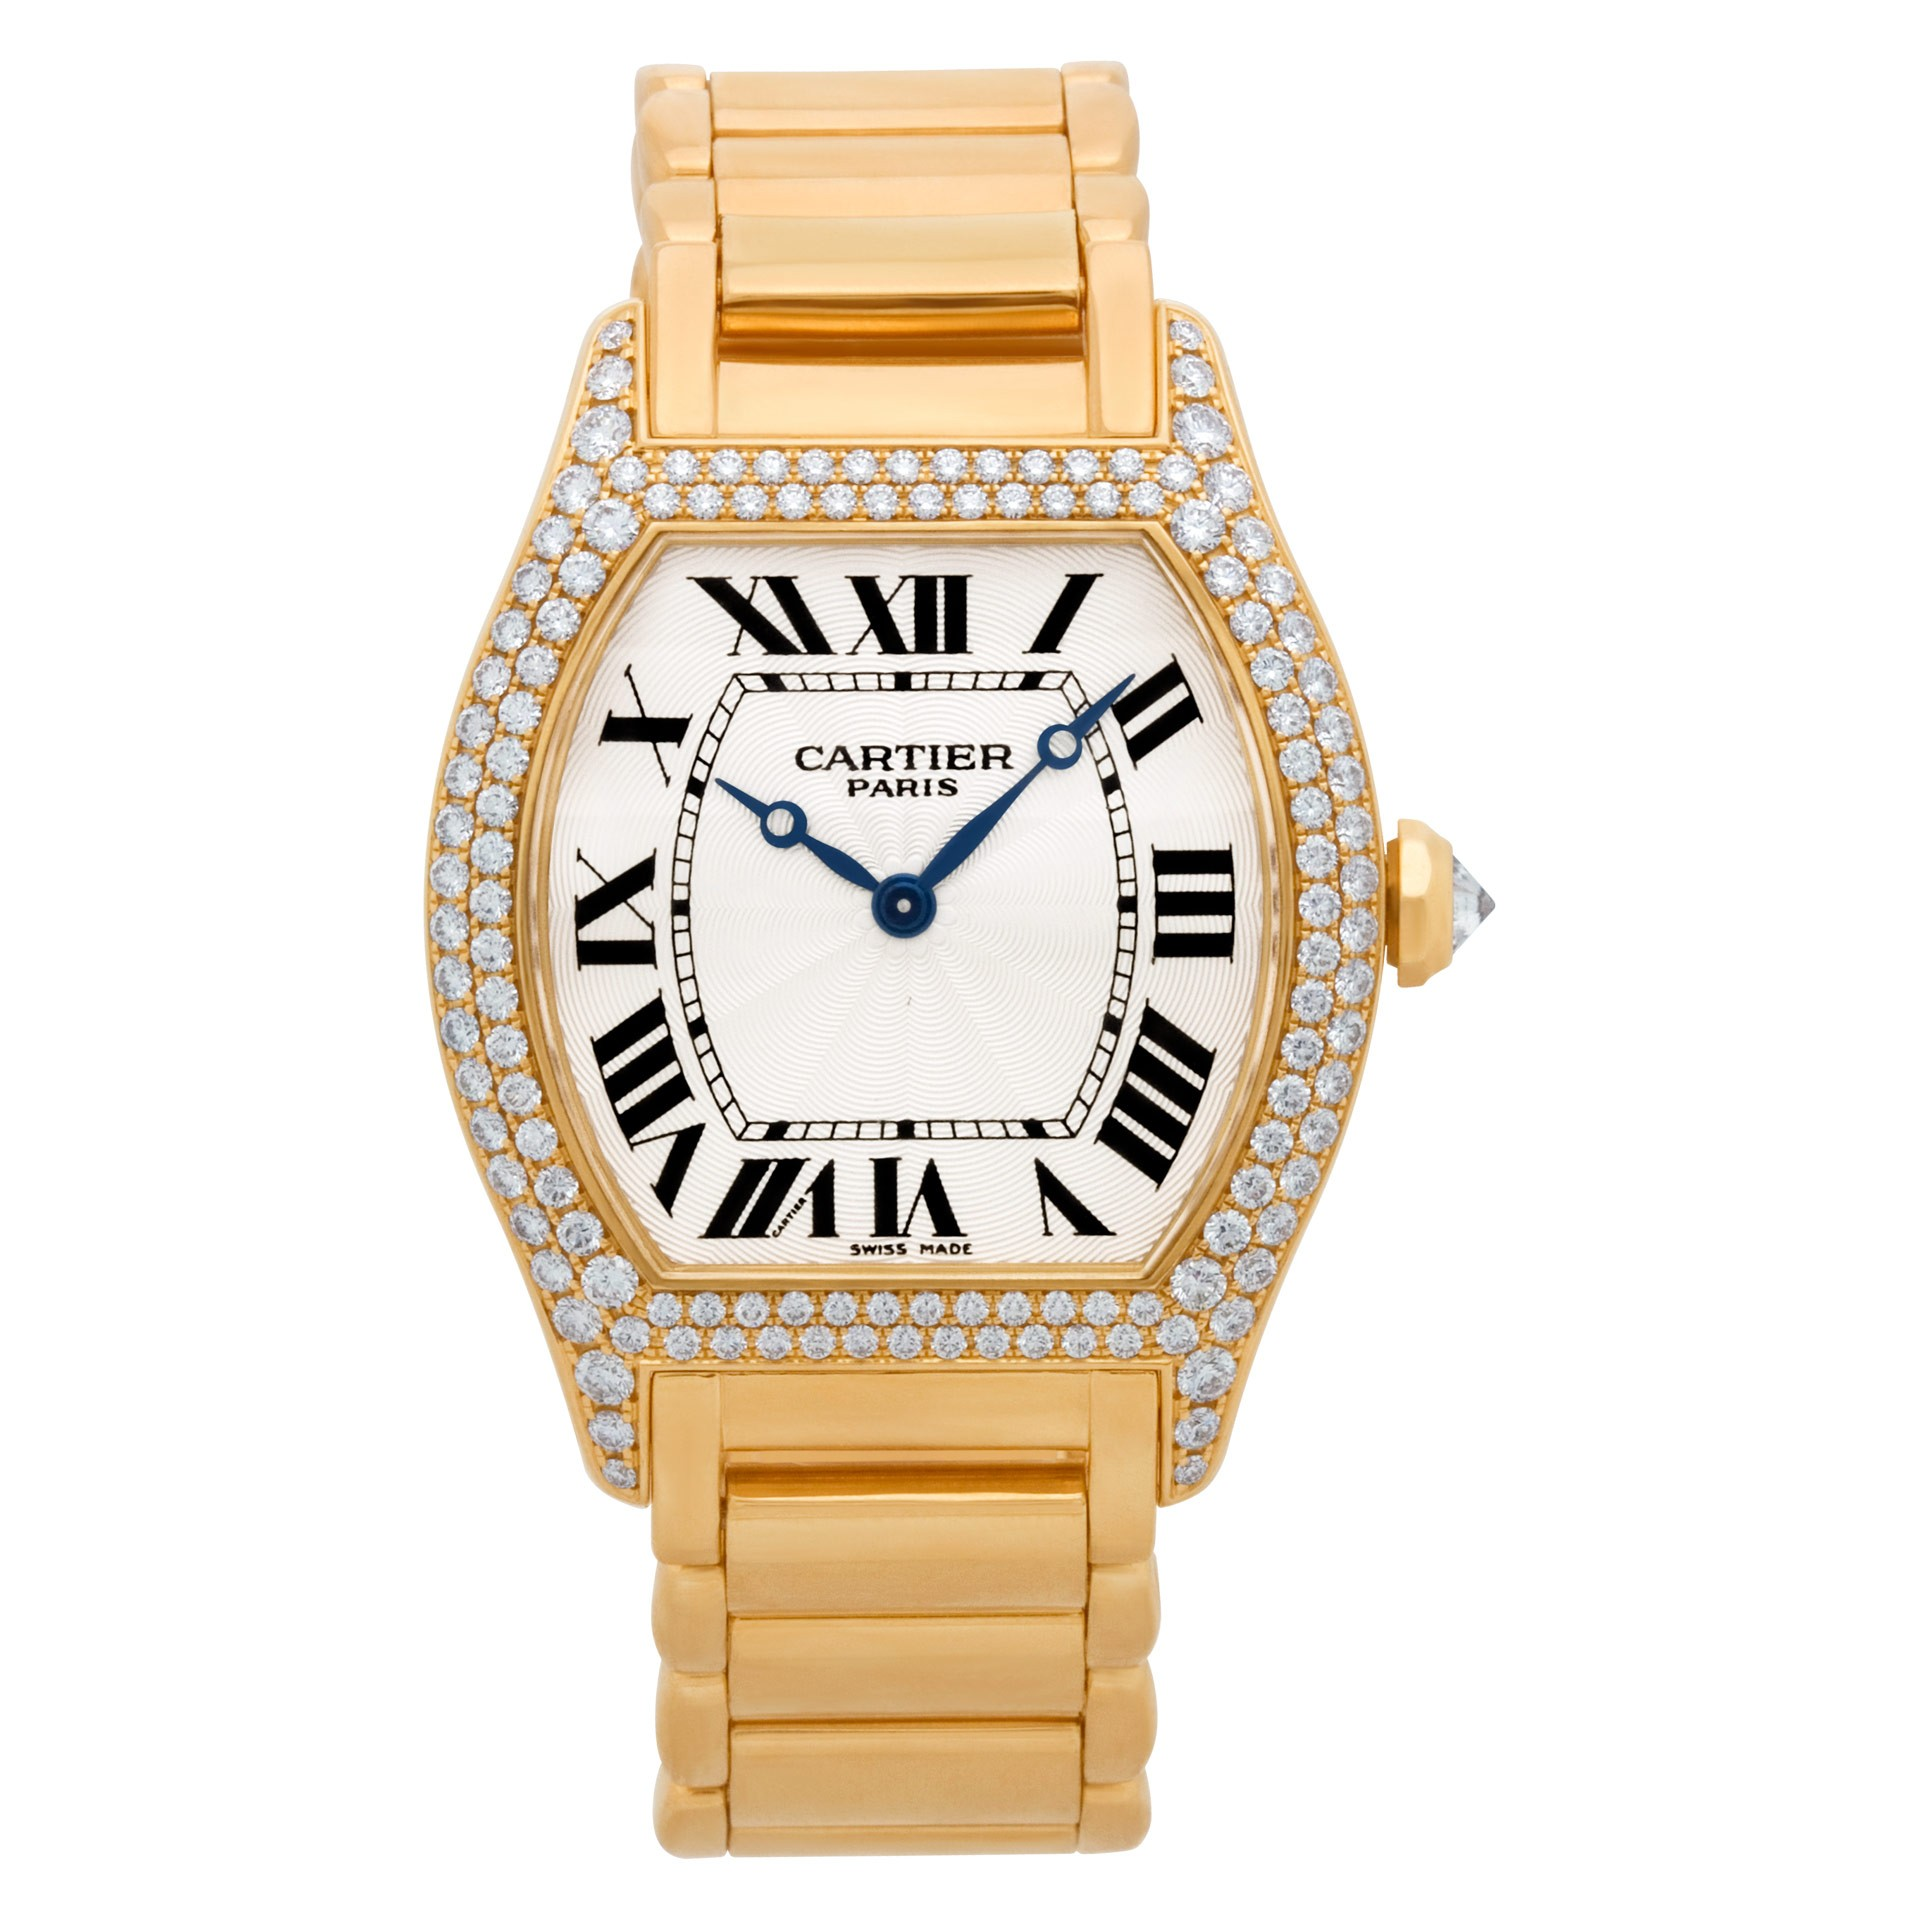 Cartier Tortue 33mm in Yellow Gold with Diamonds Bezel and Lugs